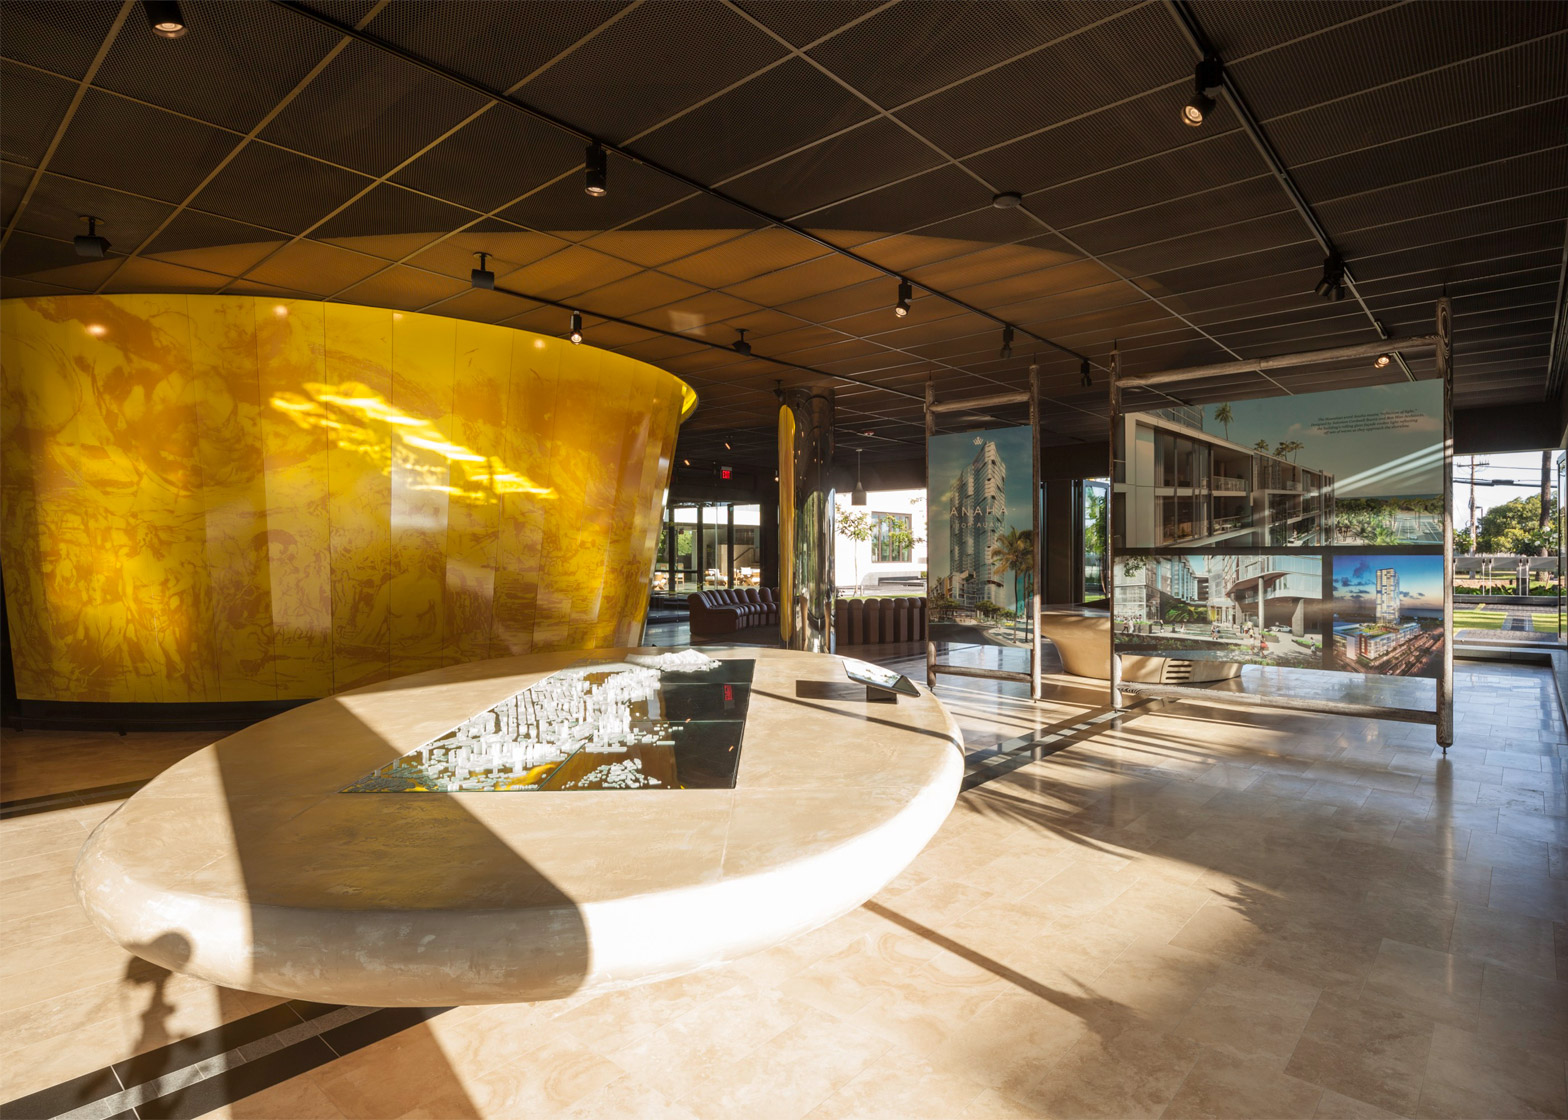 Ward Village Information Center and Sales Gallery, Honolulu, USA, by Woods Bagot